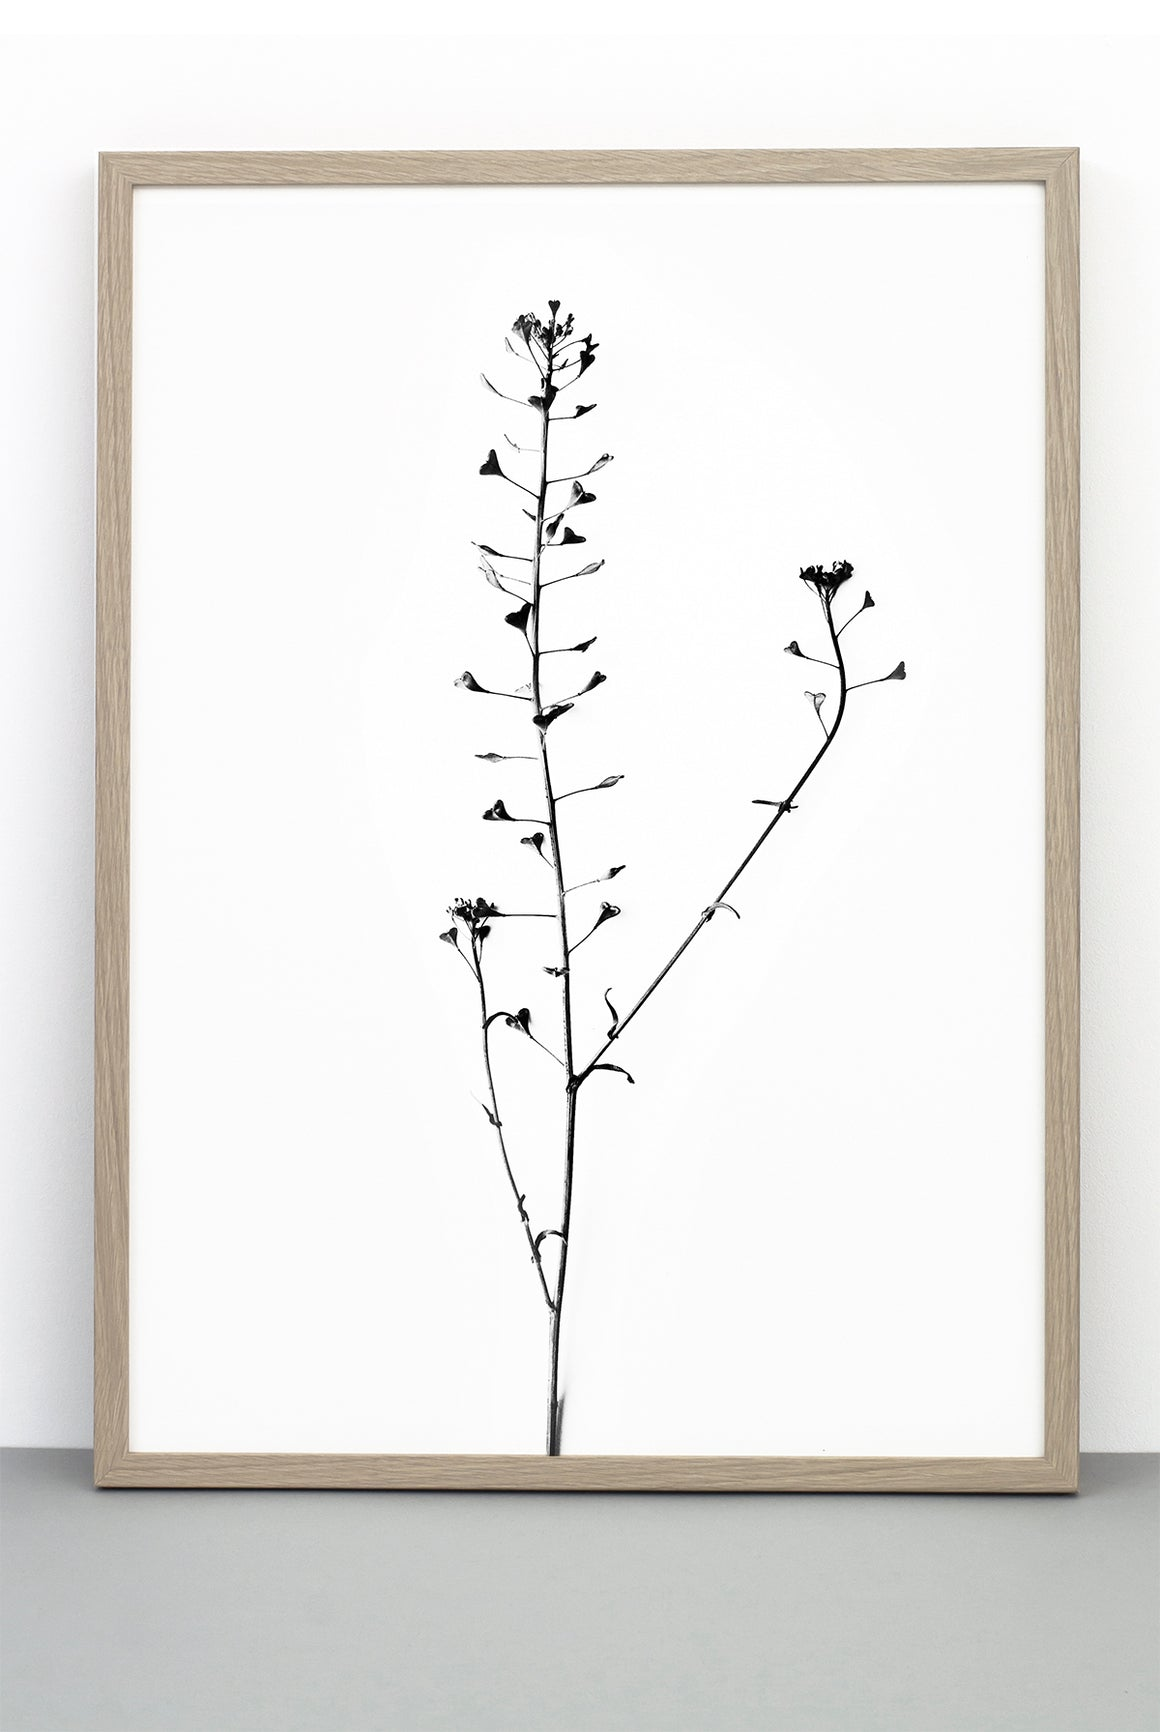 HEART PLANT PRINT, A BOTANICAL PHOTOGRAPHIC BLACK AND WHITE POSTER